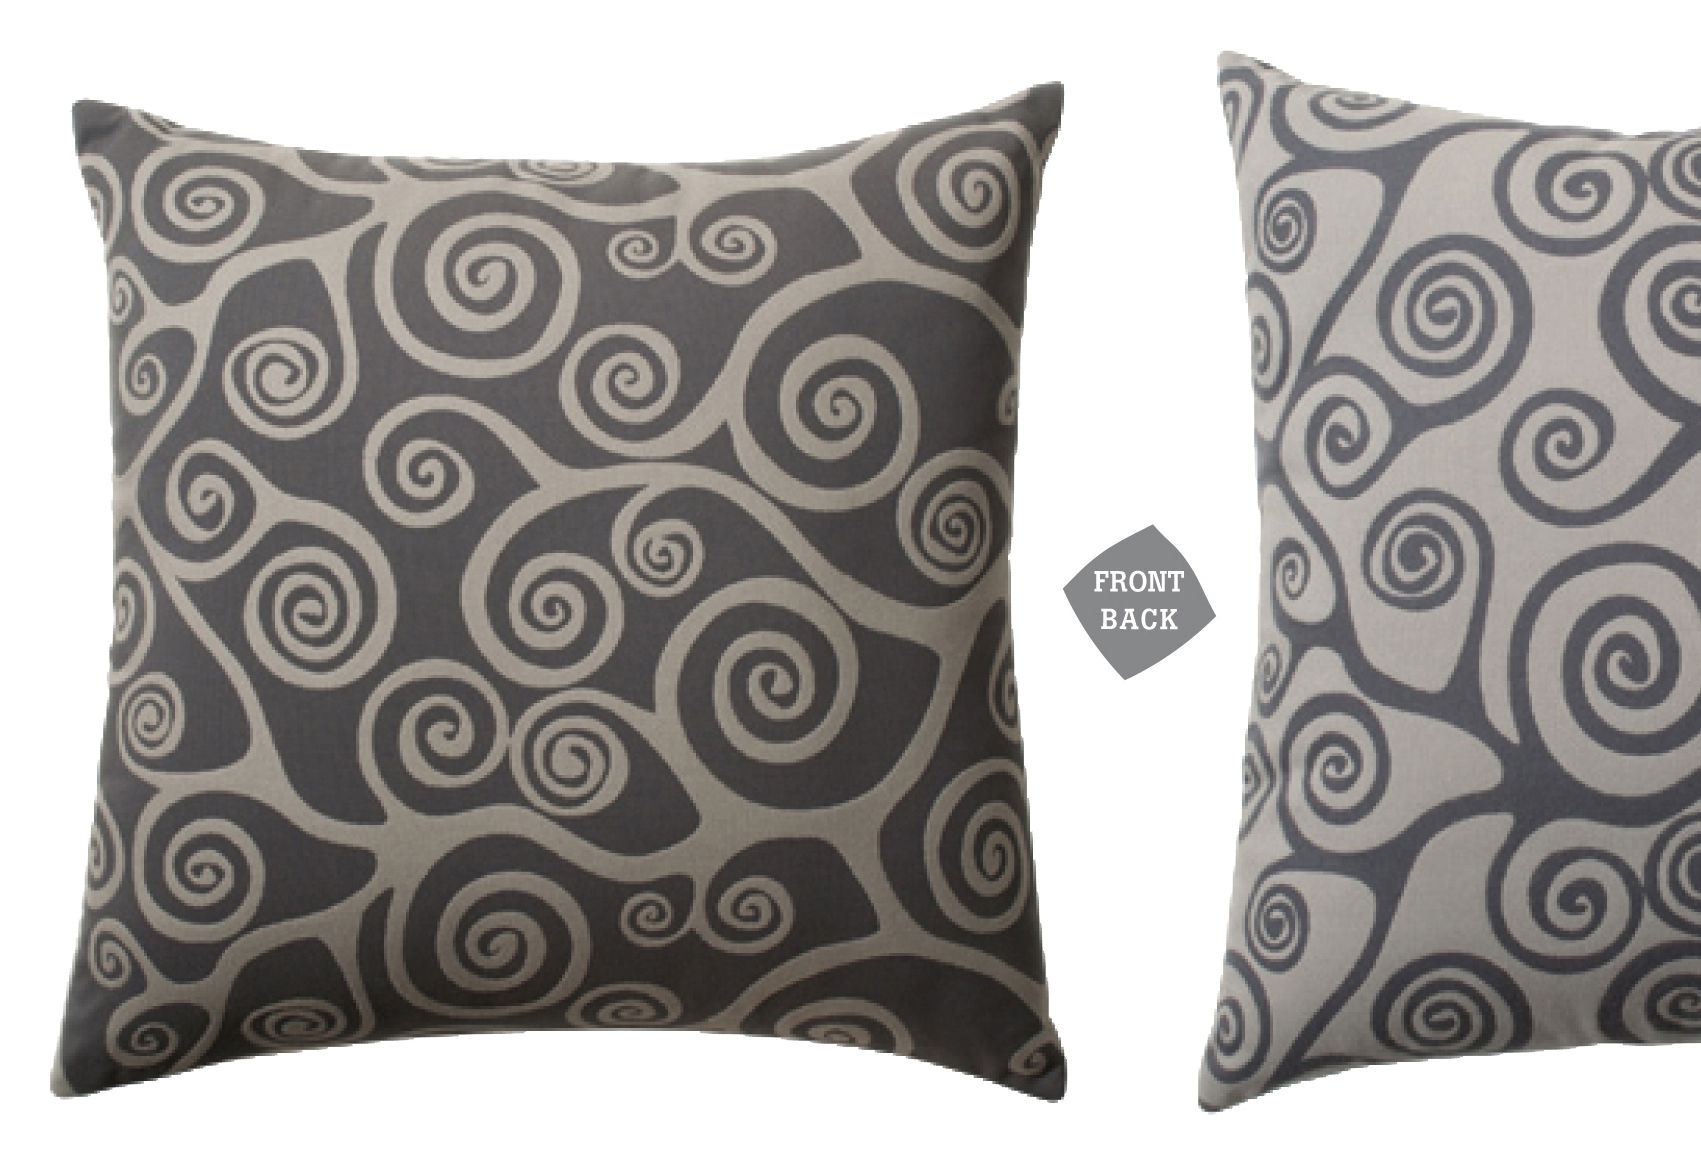 Soft ware spirale outdoor cushion outdoor use 55x55 cm for Coussin exterieur 55x55